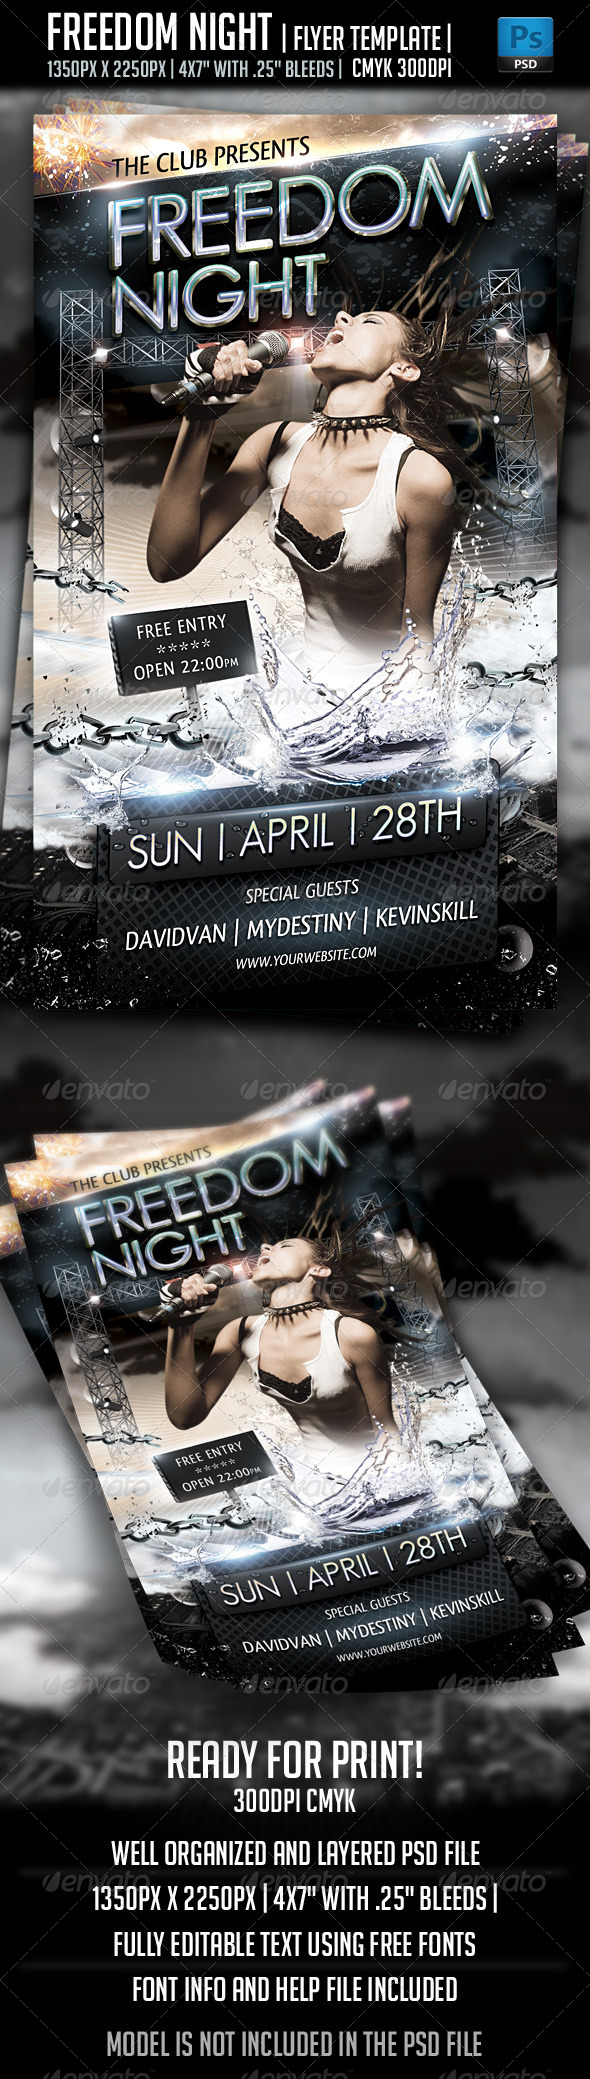 Freedom Night Flyer Template - Clubs & Parties Events